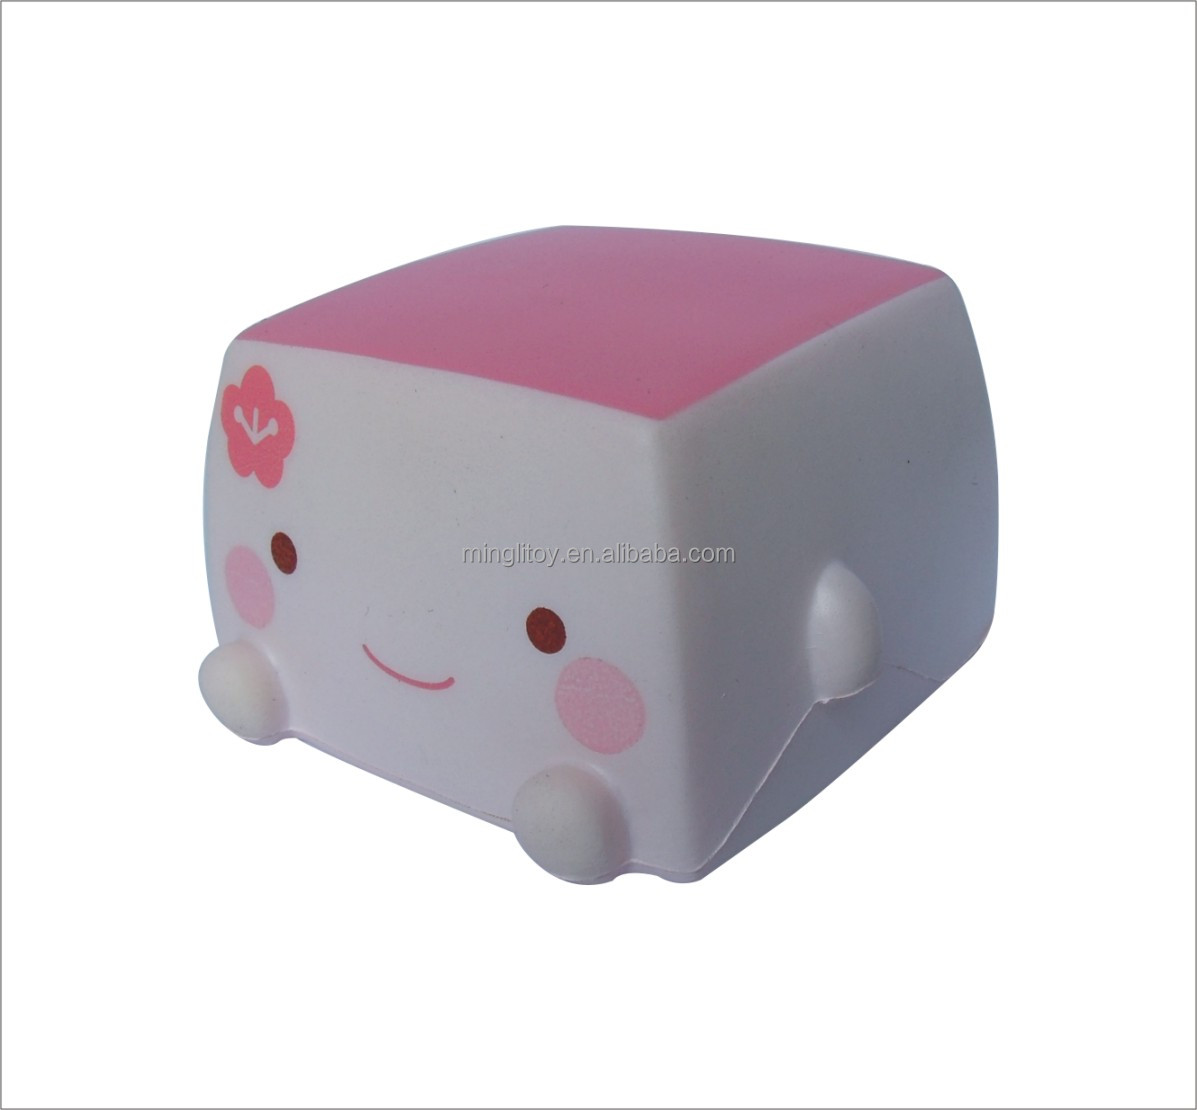 cubic soft toy/anti stress toy lovely